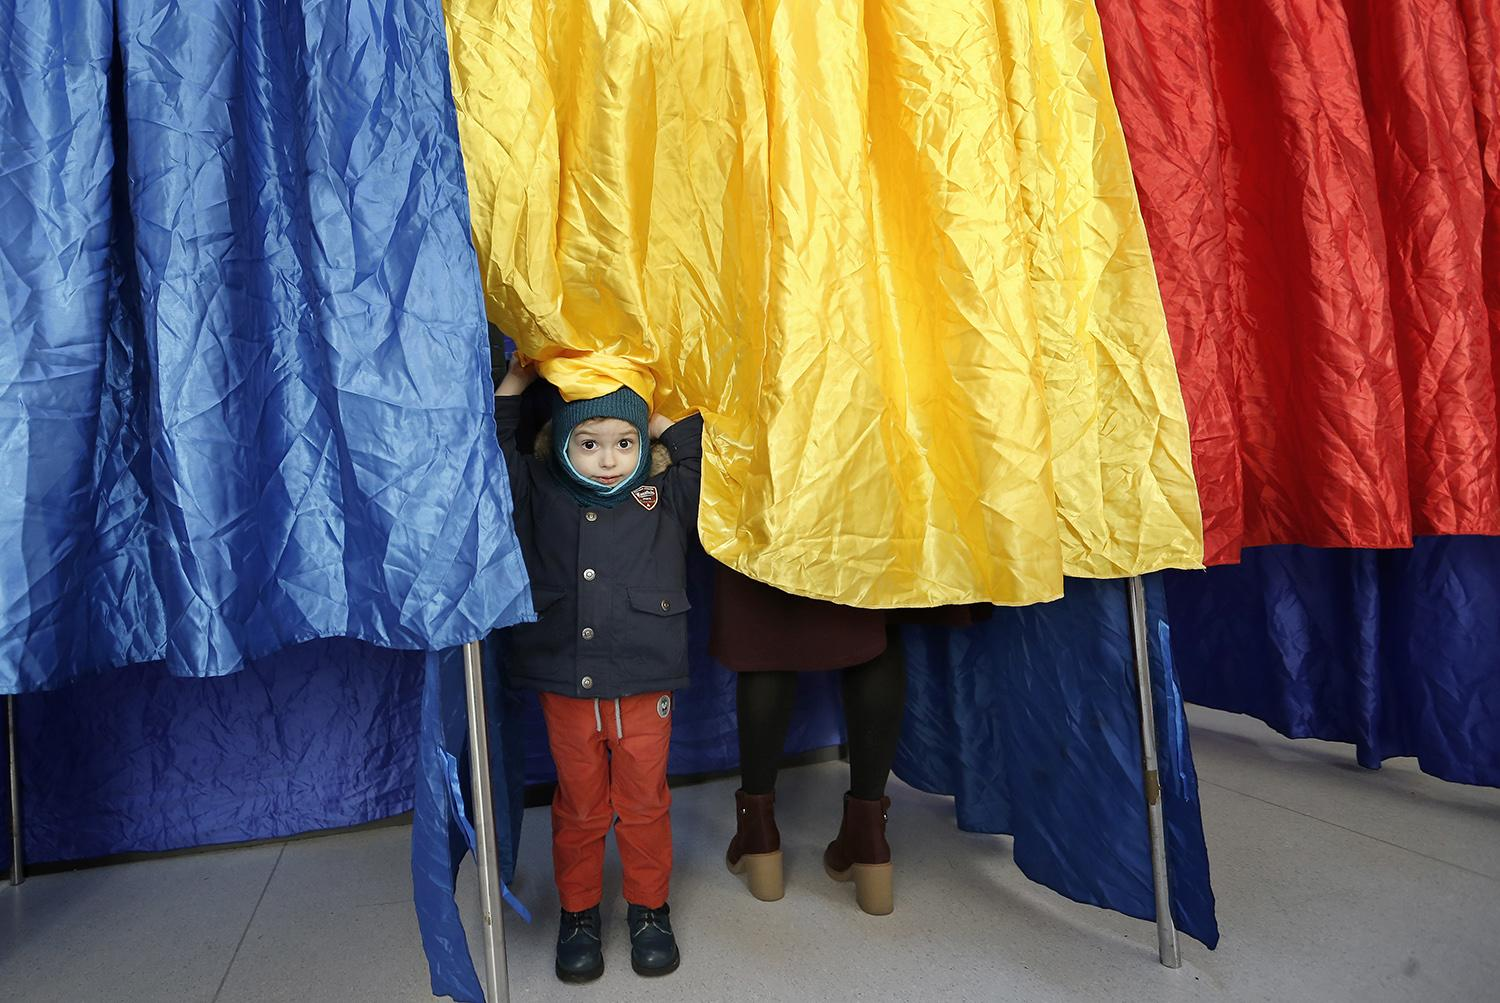 <p>A Romanian boy plays with the curtain of the polling booth, in which his mother is stamping her ballot, at Cezar Bolliac Gymnasium School polling station, in Bucharest, Romania, Dec. 11, 2016. (Photo: ROBERT GHEMENT/EPA) </p>